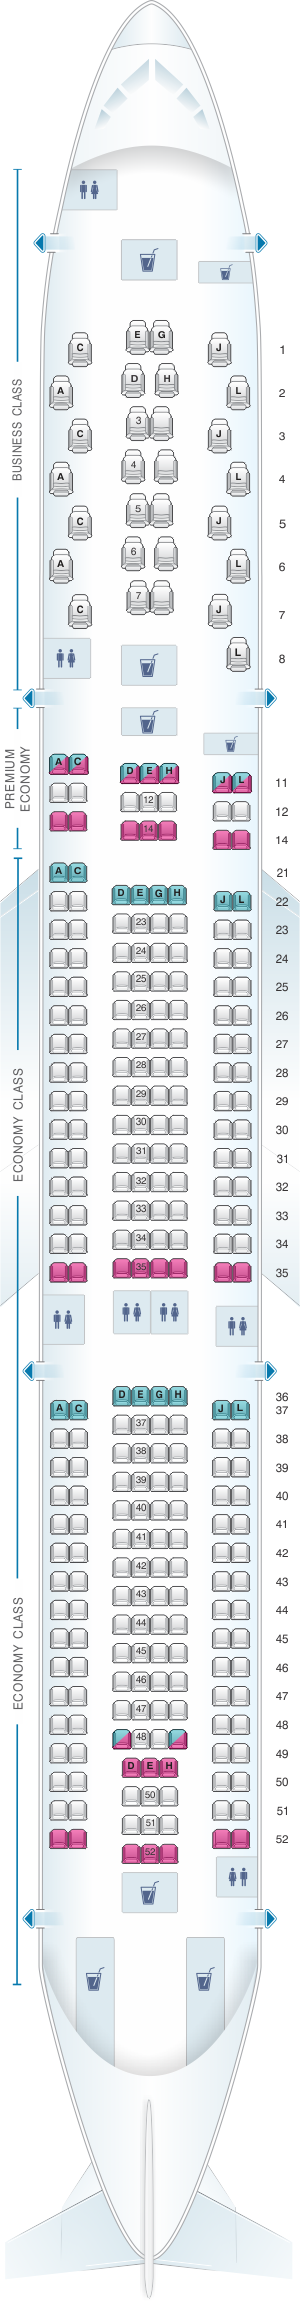 Seat map for Iberia Airbus A330 300